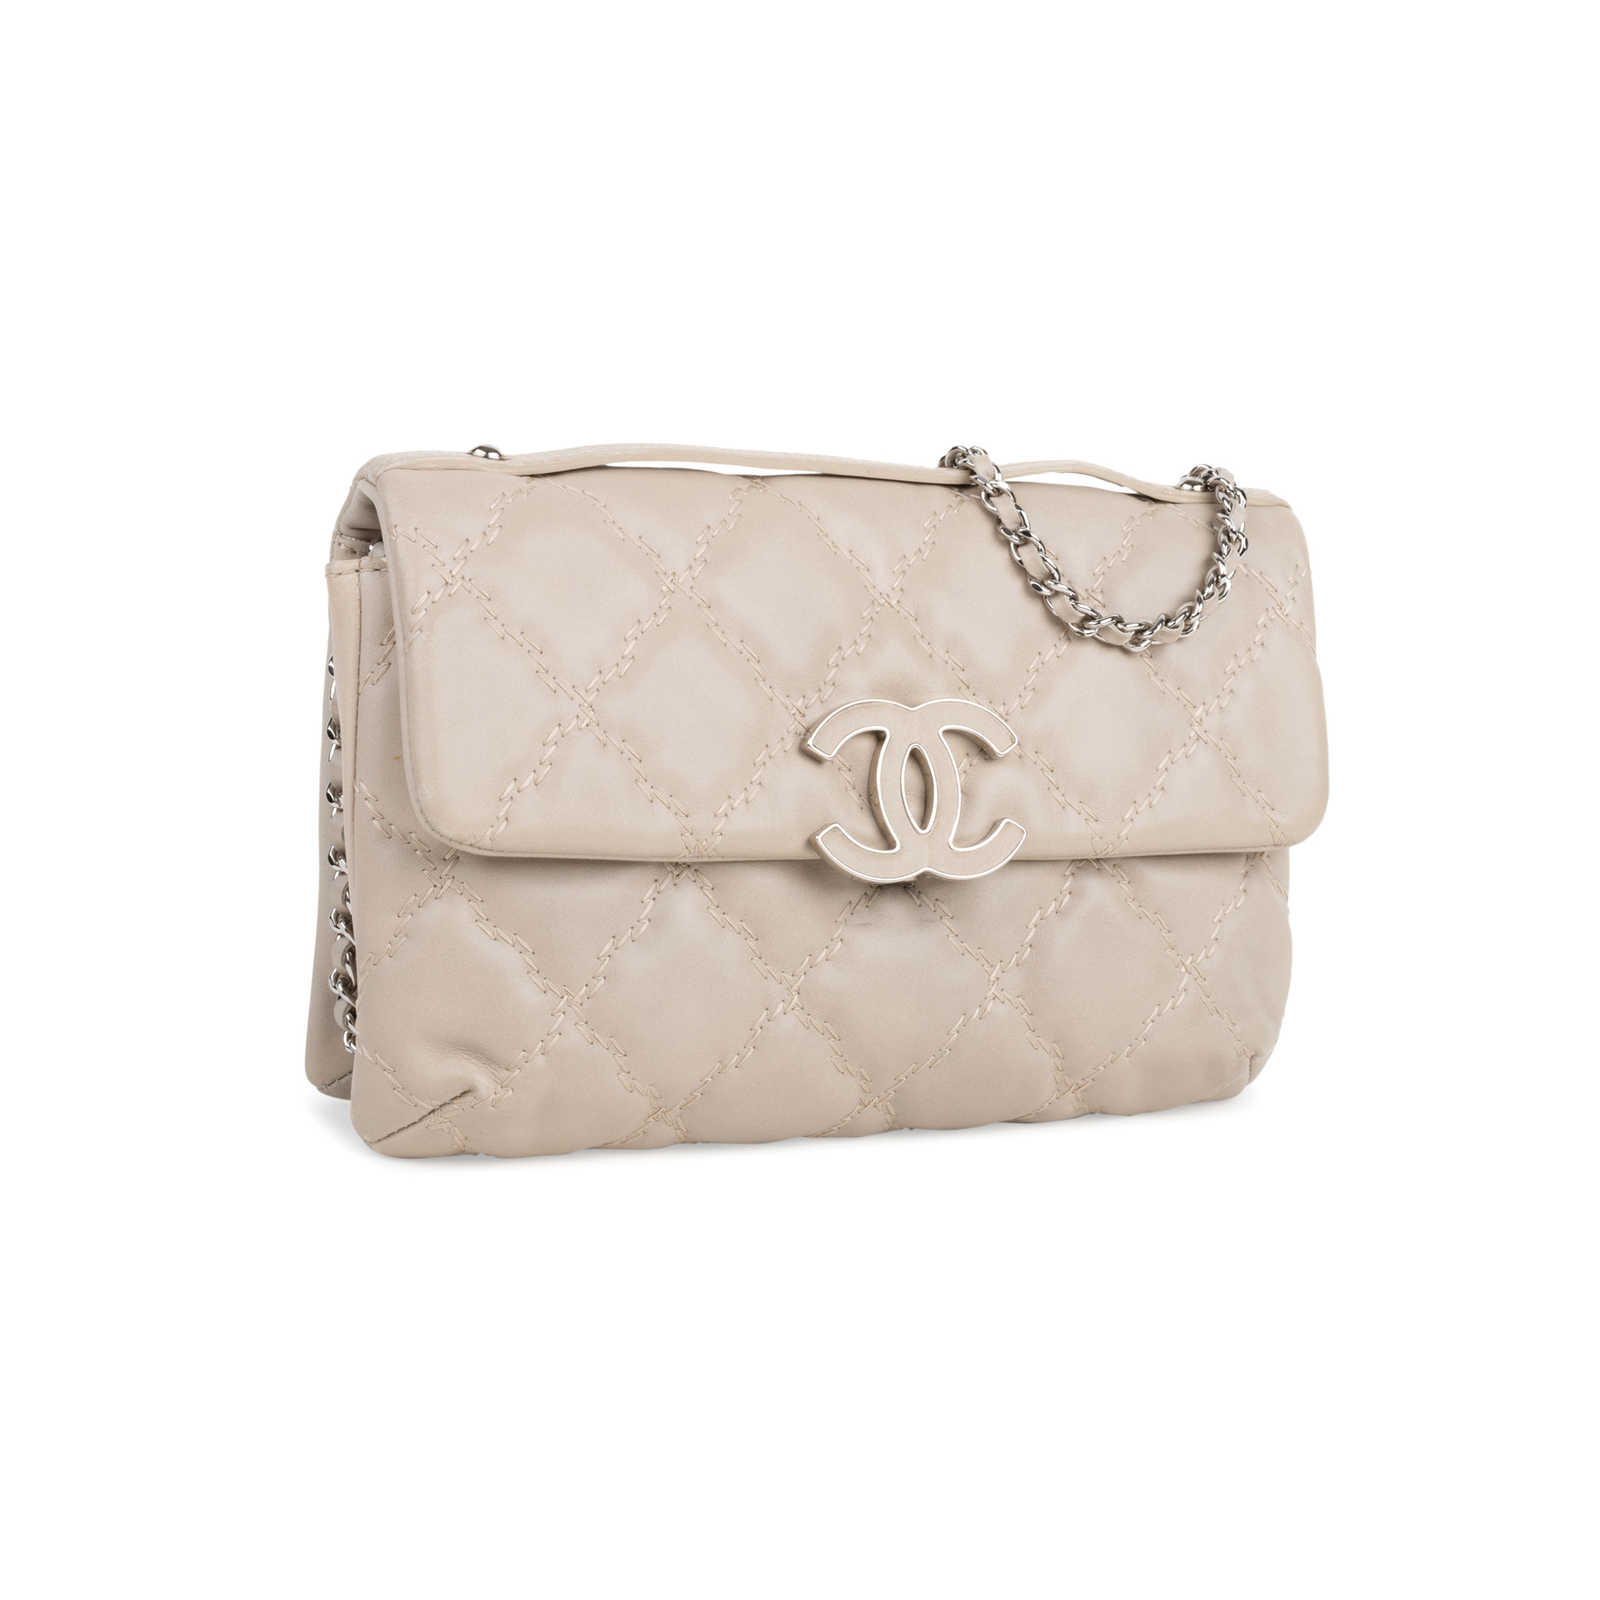 f5ec0ca94d0f ... Authentic Second Hand Chanel Quilted Stitched Clutch Bag  (PSS-424-00108) ...